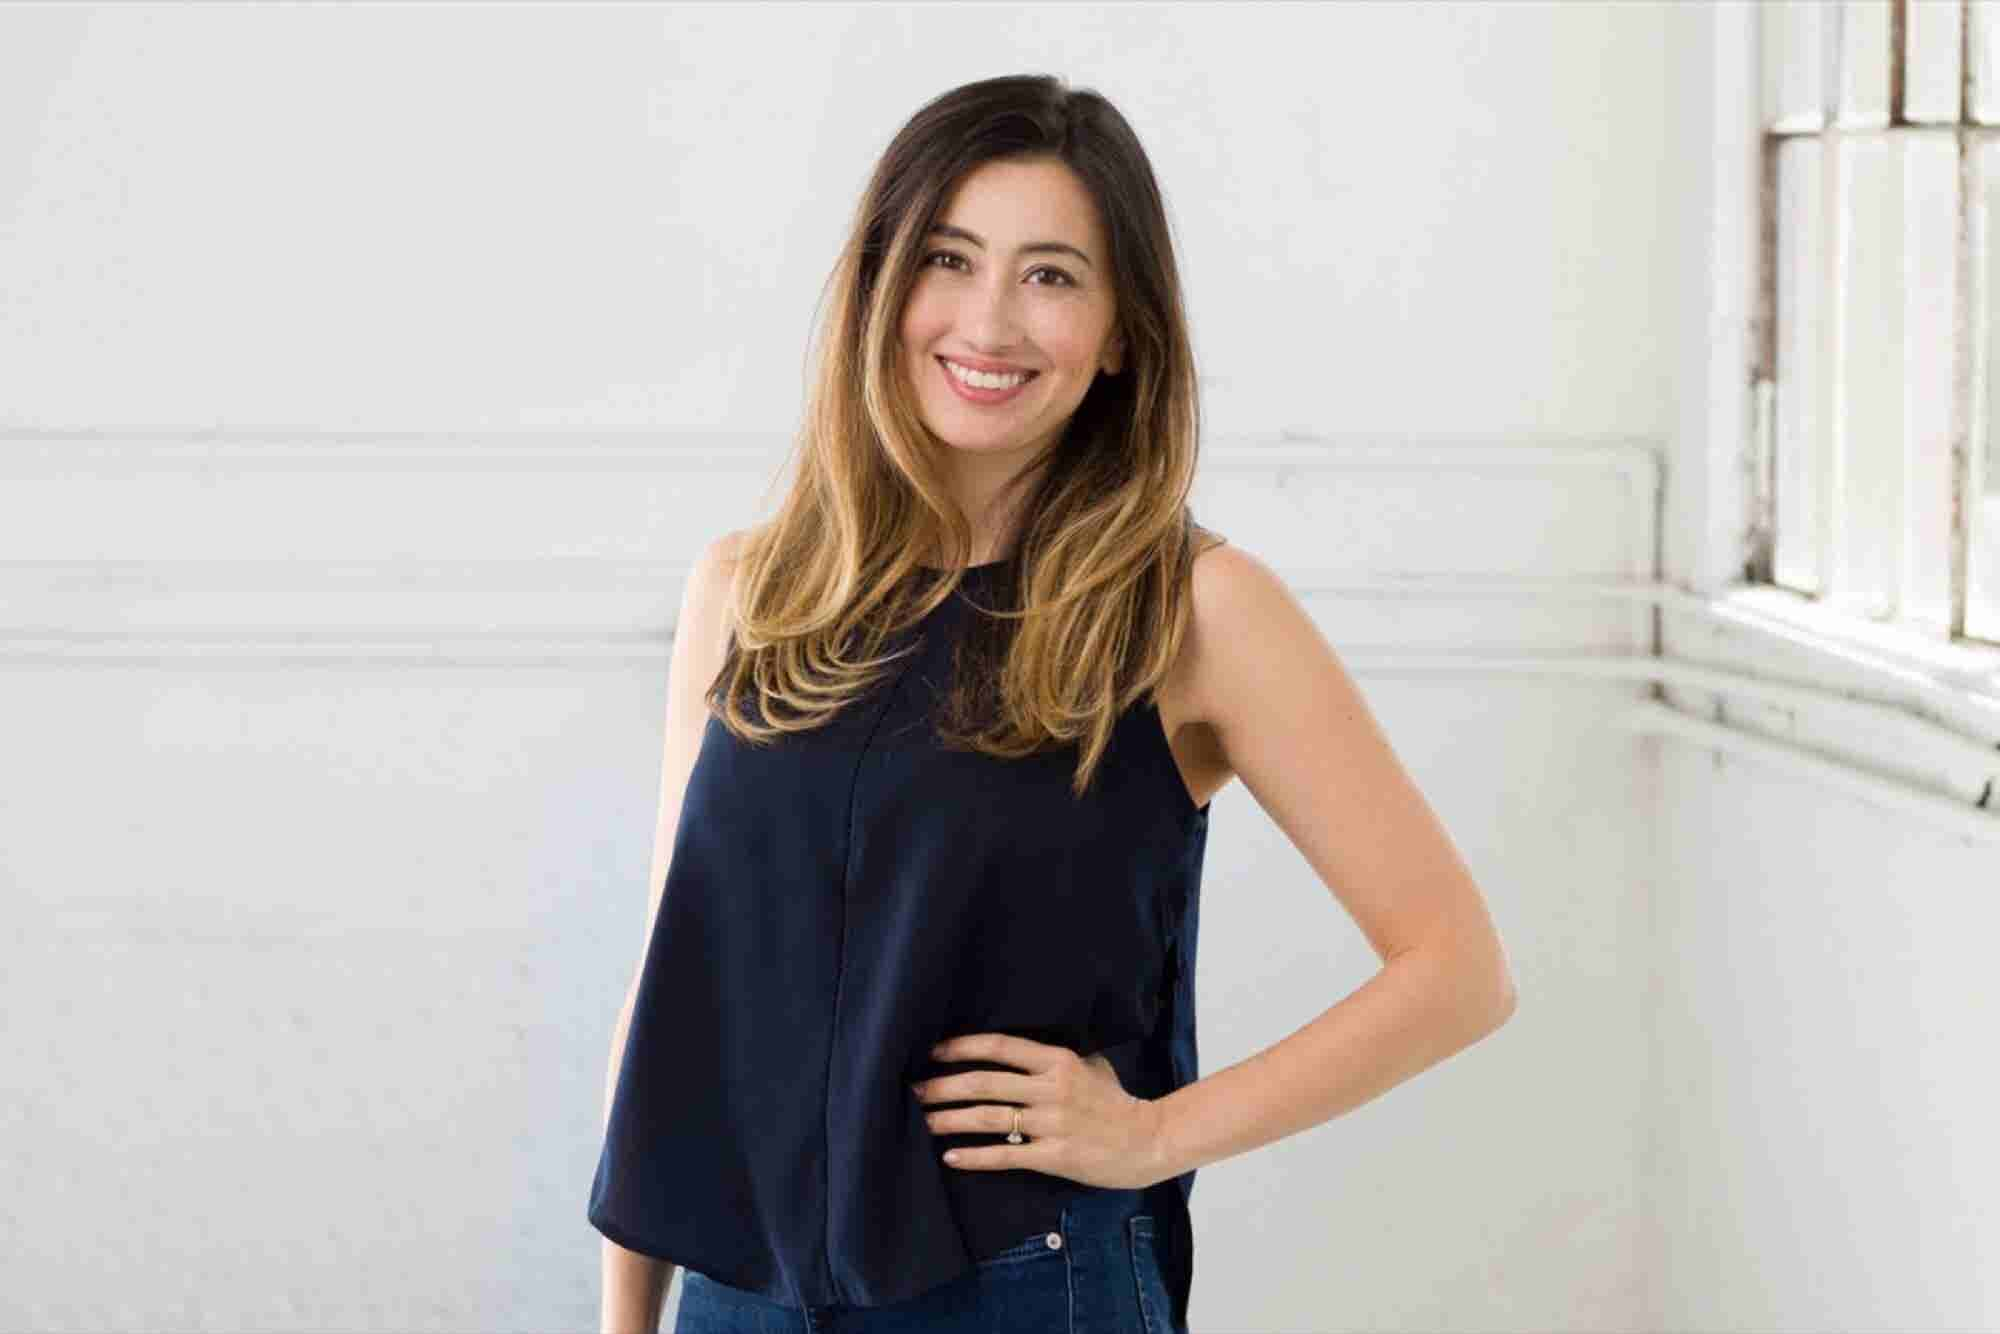 Stitch Fix Founder Explains Why the Worst Piece of Advice She Ever Got Was to Raise A Lot of Money